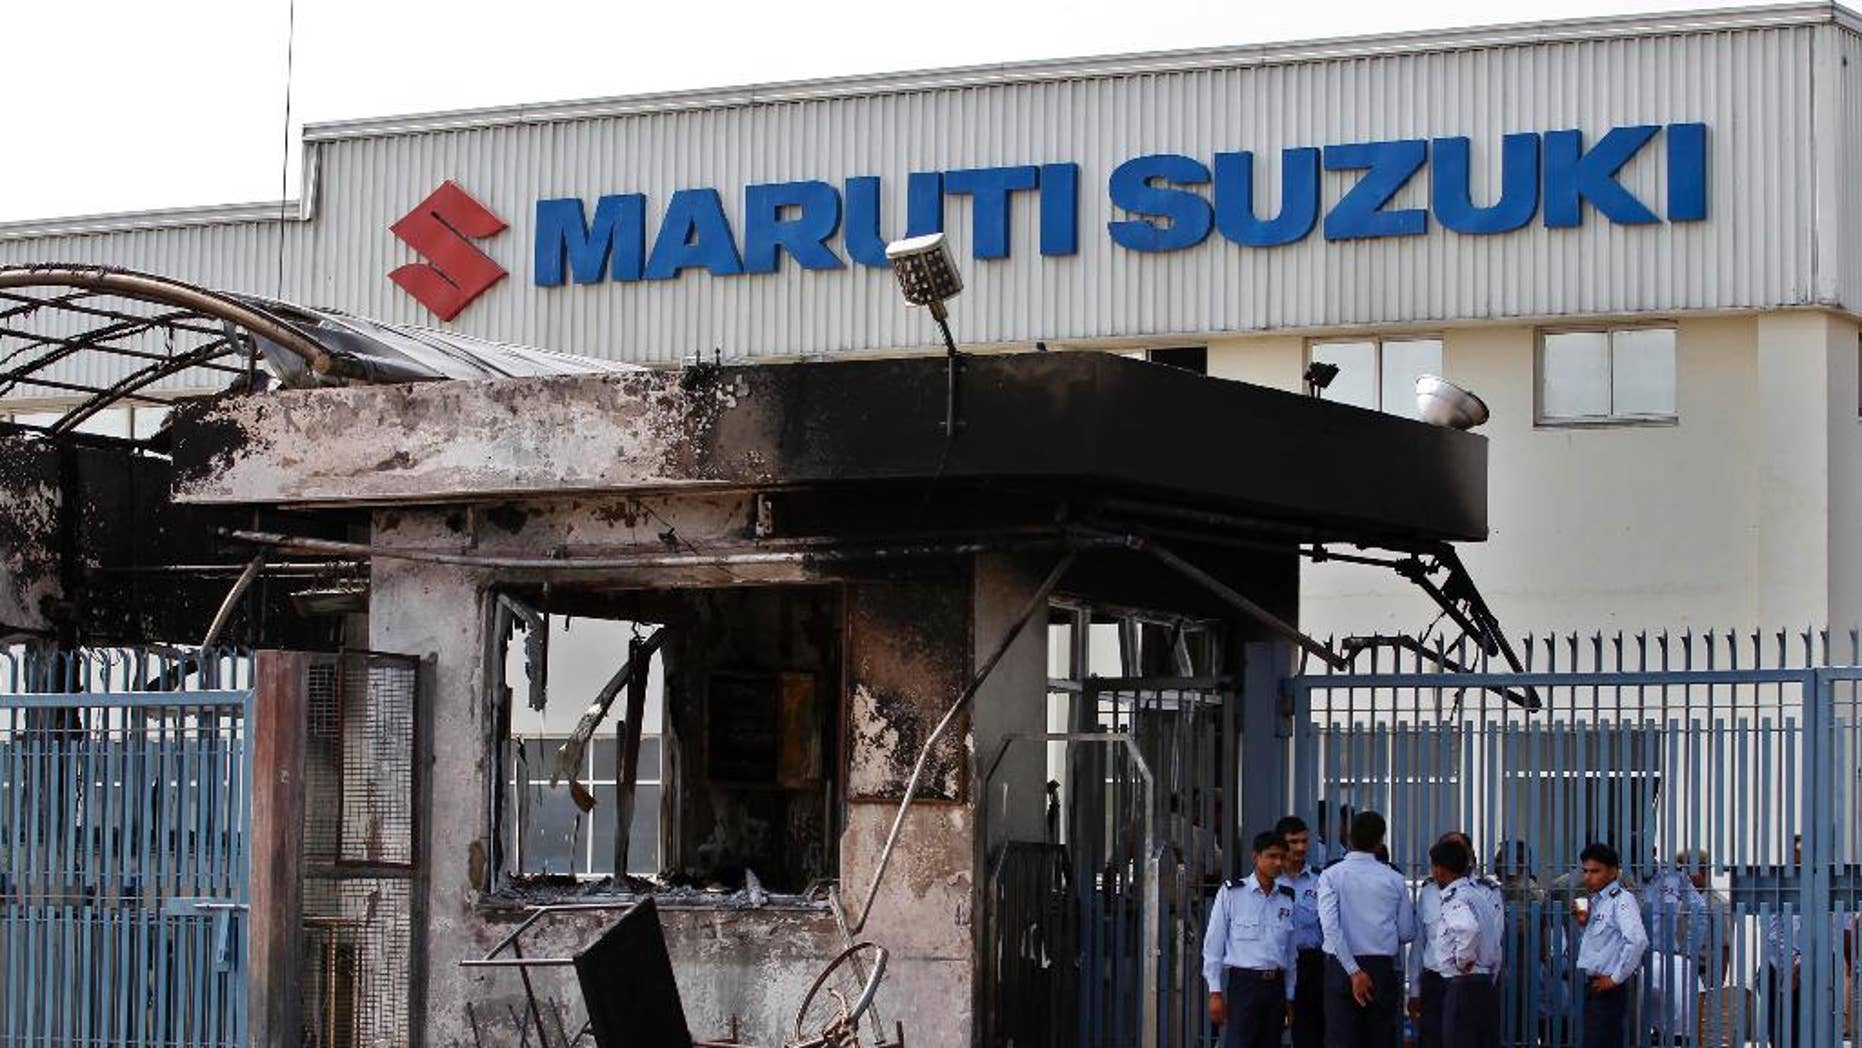 FILE - In this July 19, 2012, file photo, security guards stand near a burnt down reception block of Maruti Suzuki factory in Manesar, near New Delhi, India. A court in north India has sentenced 13 factory workers to life imprisonment for taking part in violence at the country's largest automobile factory that led to the death of a manager nearly five years ago. (AP Photo/Saurabh Das, File)